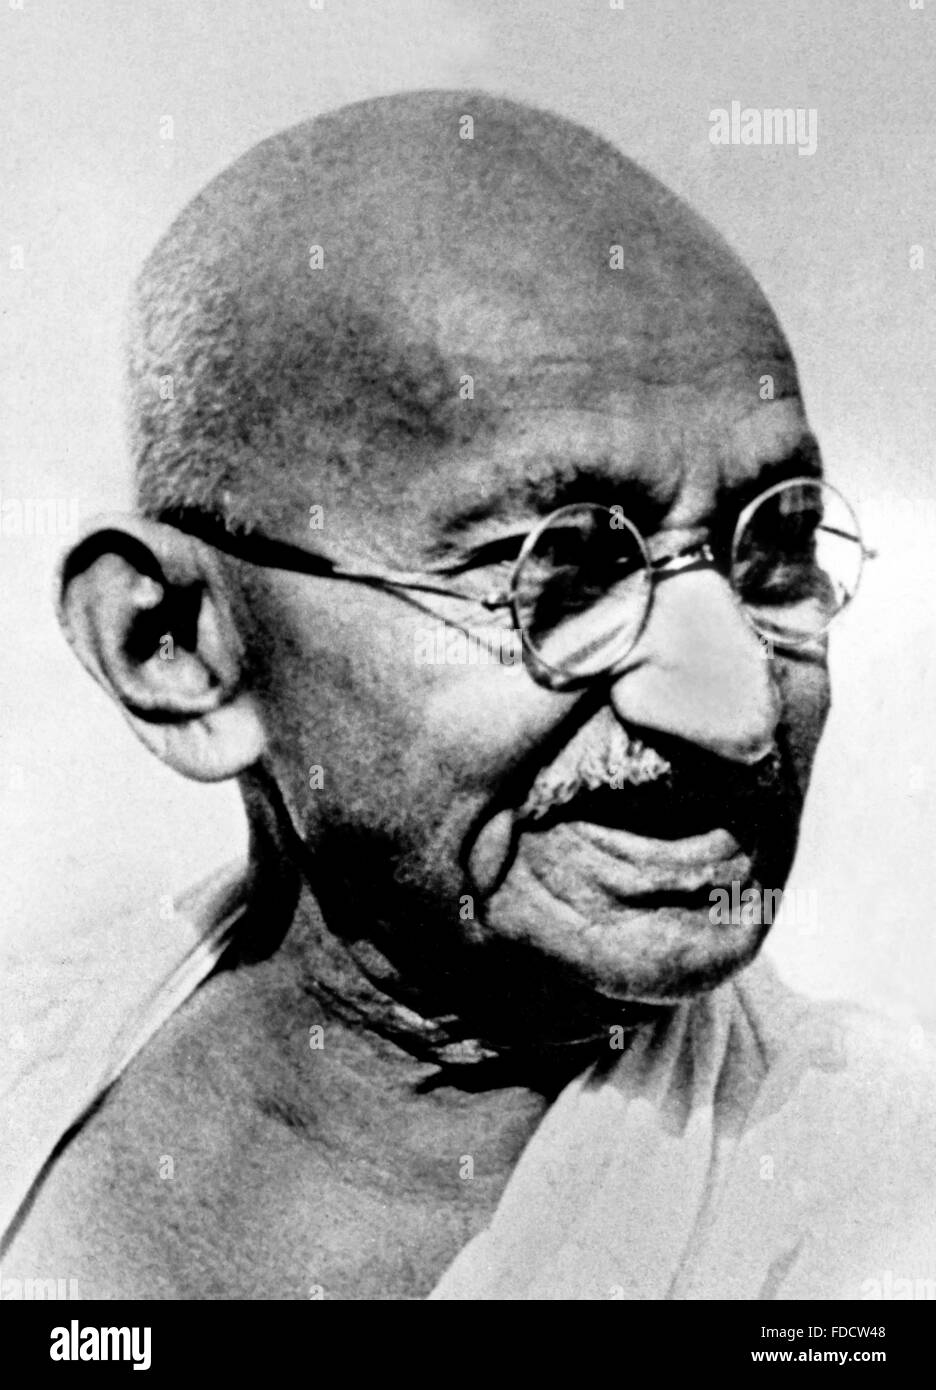 Mahatma Gandhi. Portrait of Mohandas Karamchand Gandhi, widely known as Mahatma Gandhi.Photograph most probably - Stock Image